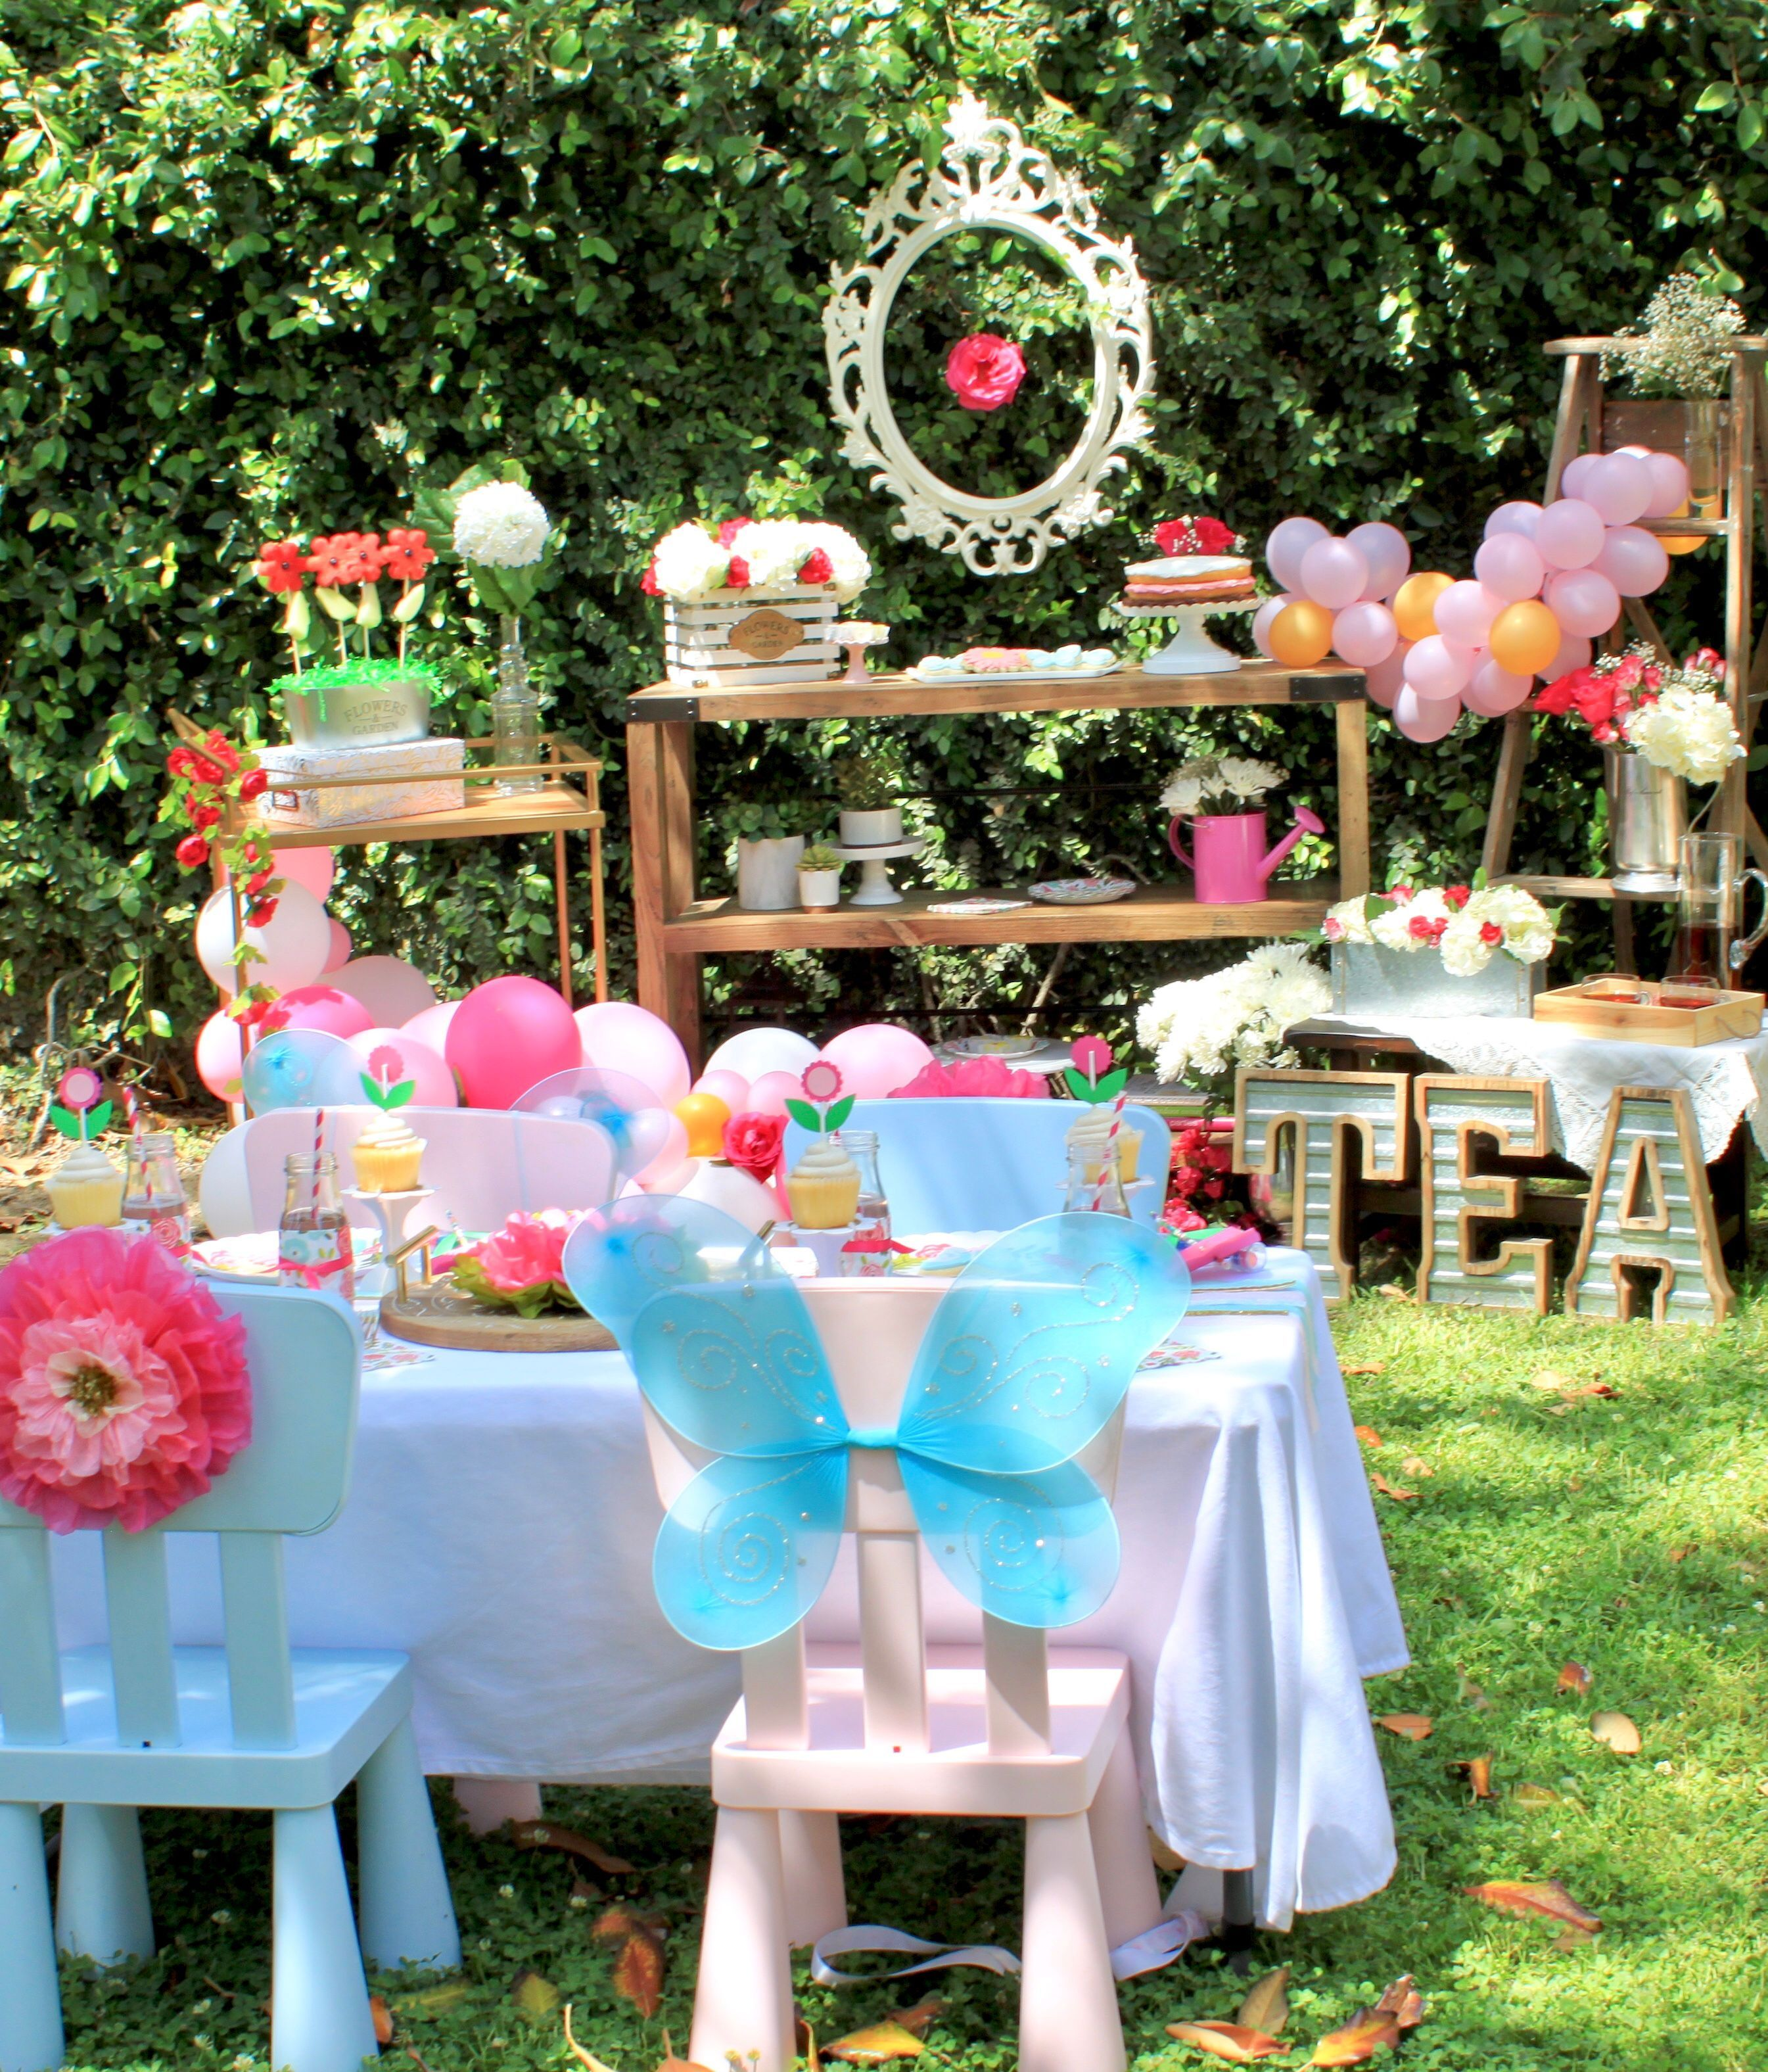 10 Kids Garden Party Ideas Most Of The Incredible And Interesting Kids Gardening Party Kindergarten Party Kids Party Decorations